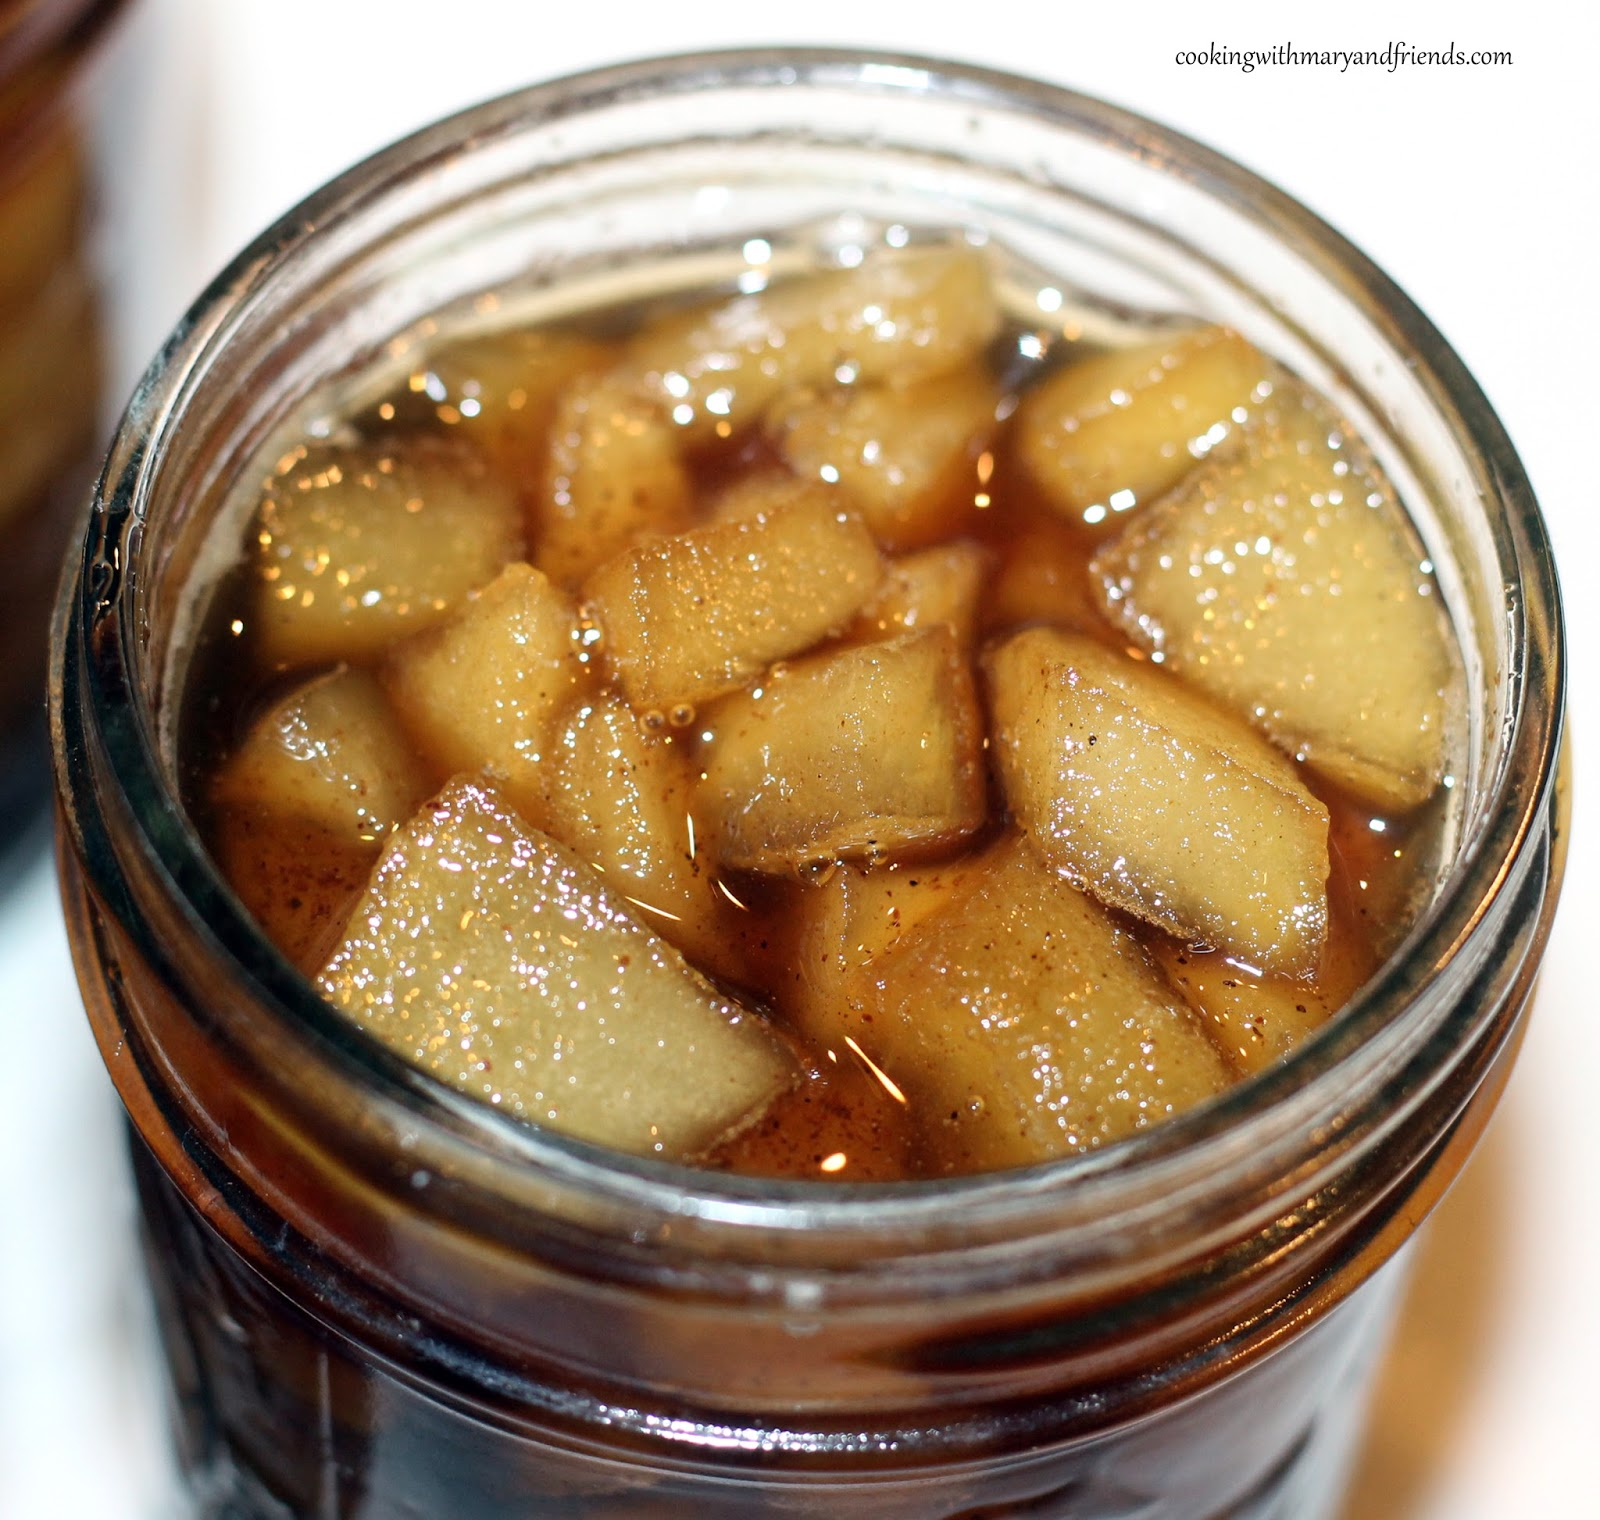 Cooking with mary and friends apples n spiced rum sauce recipe forumfinder Images